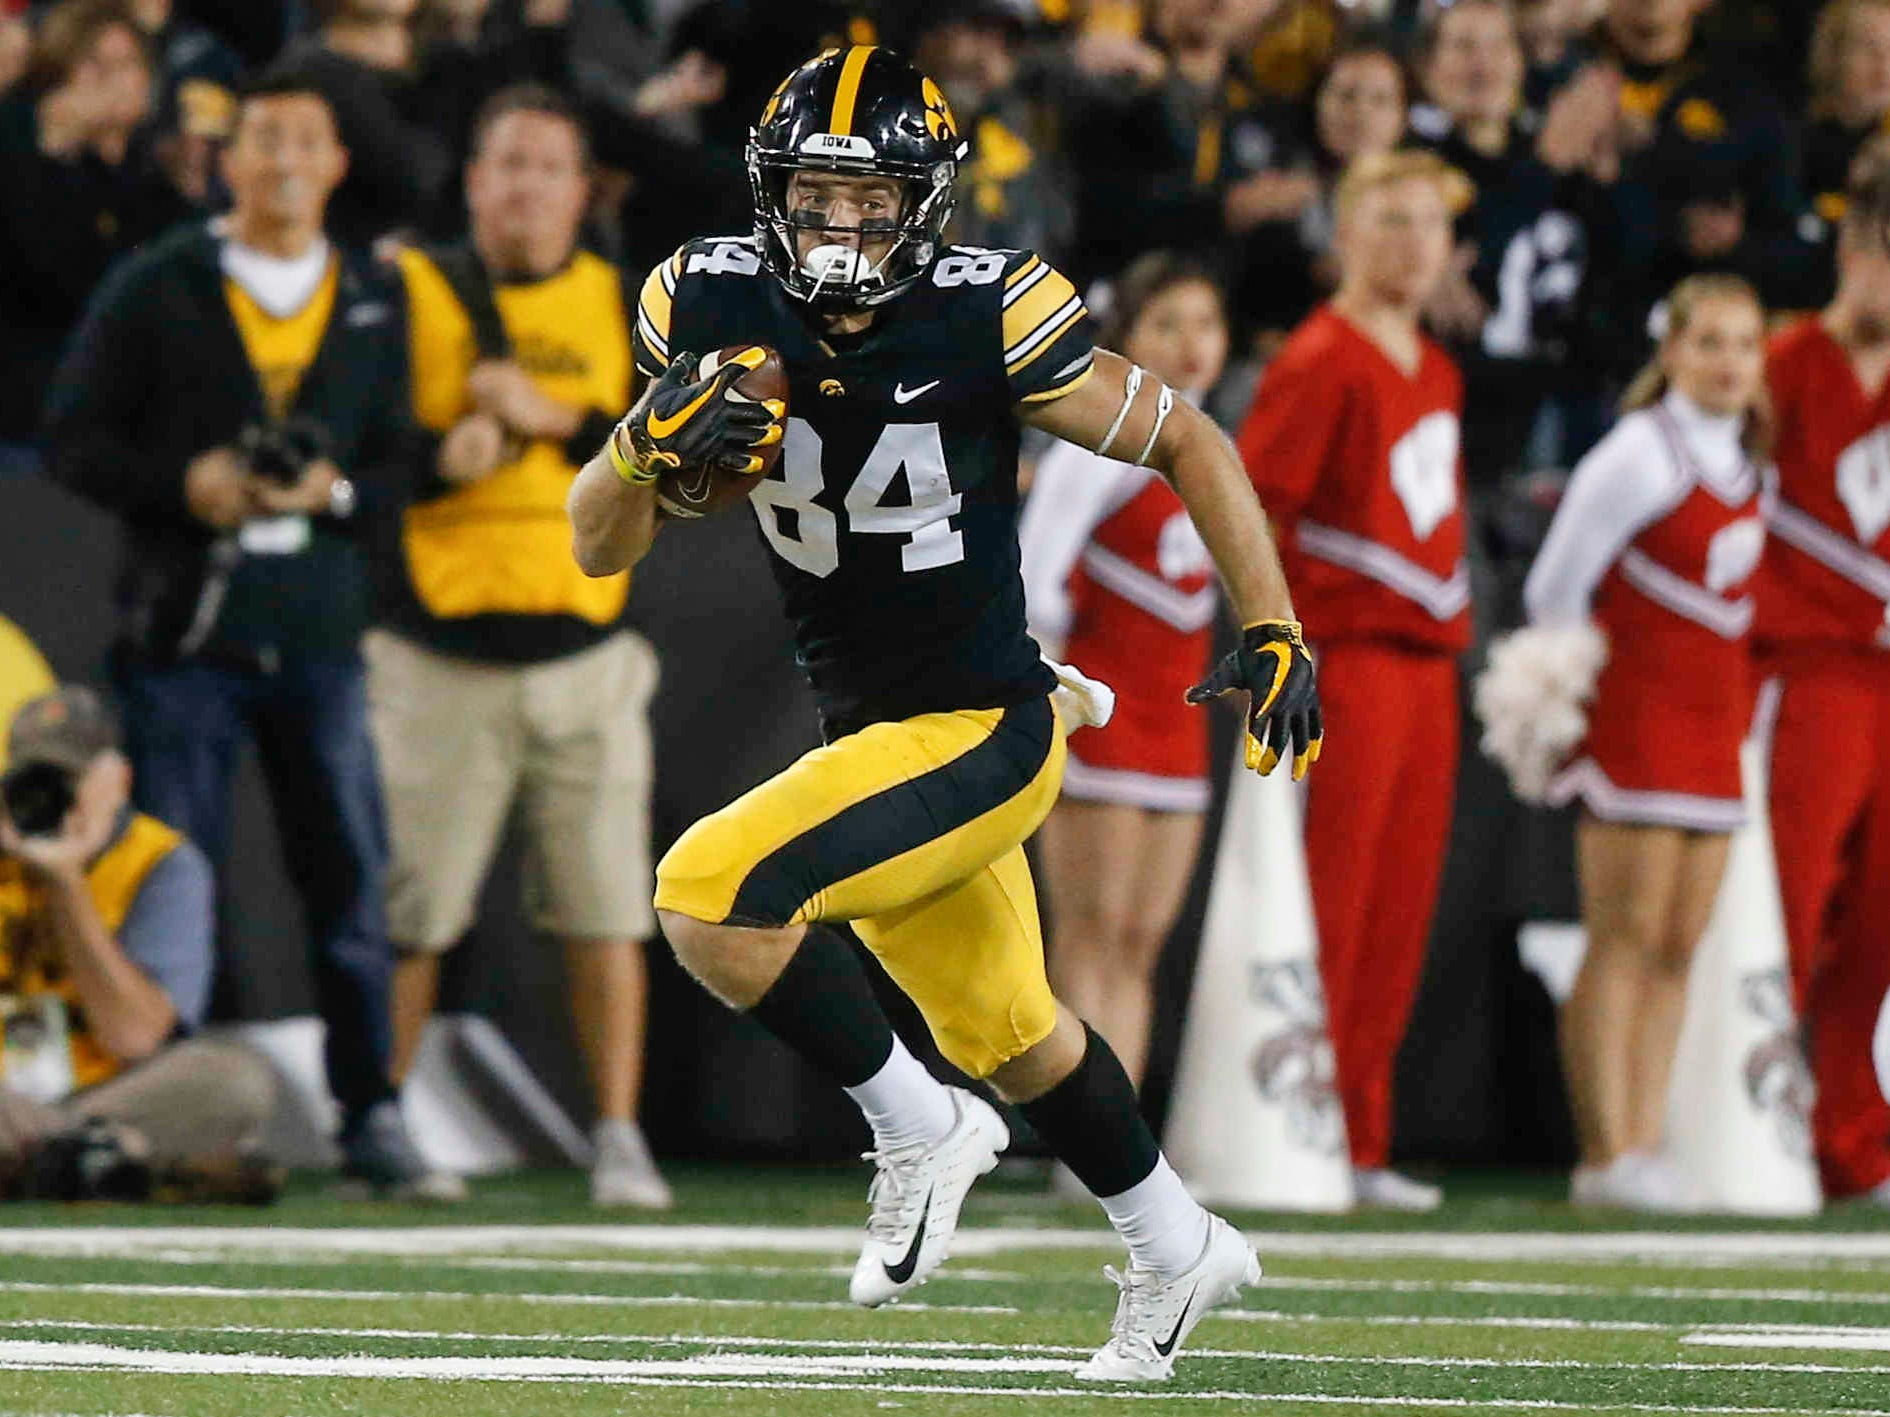 Iowa receiver Nick Easley runs the ball after pulling in a reception against Wisconsin on Saturday, Sept. 22, 2018, at Kinnick Stadium in Iowa City.